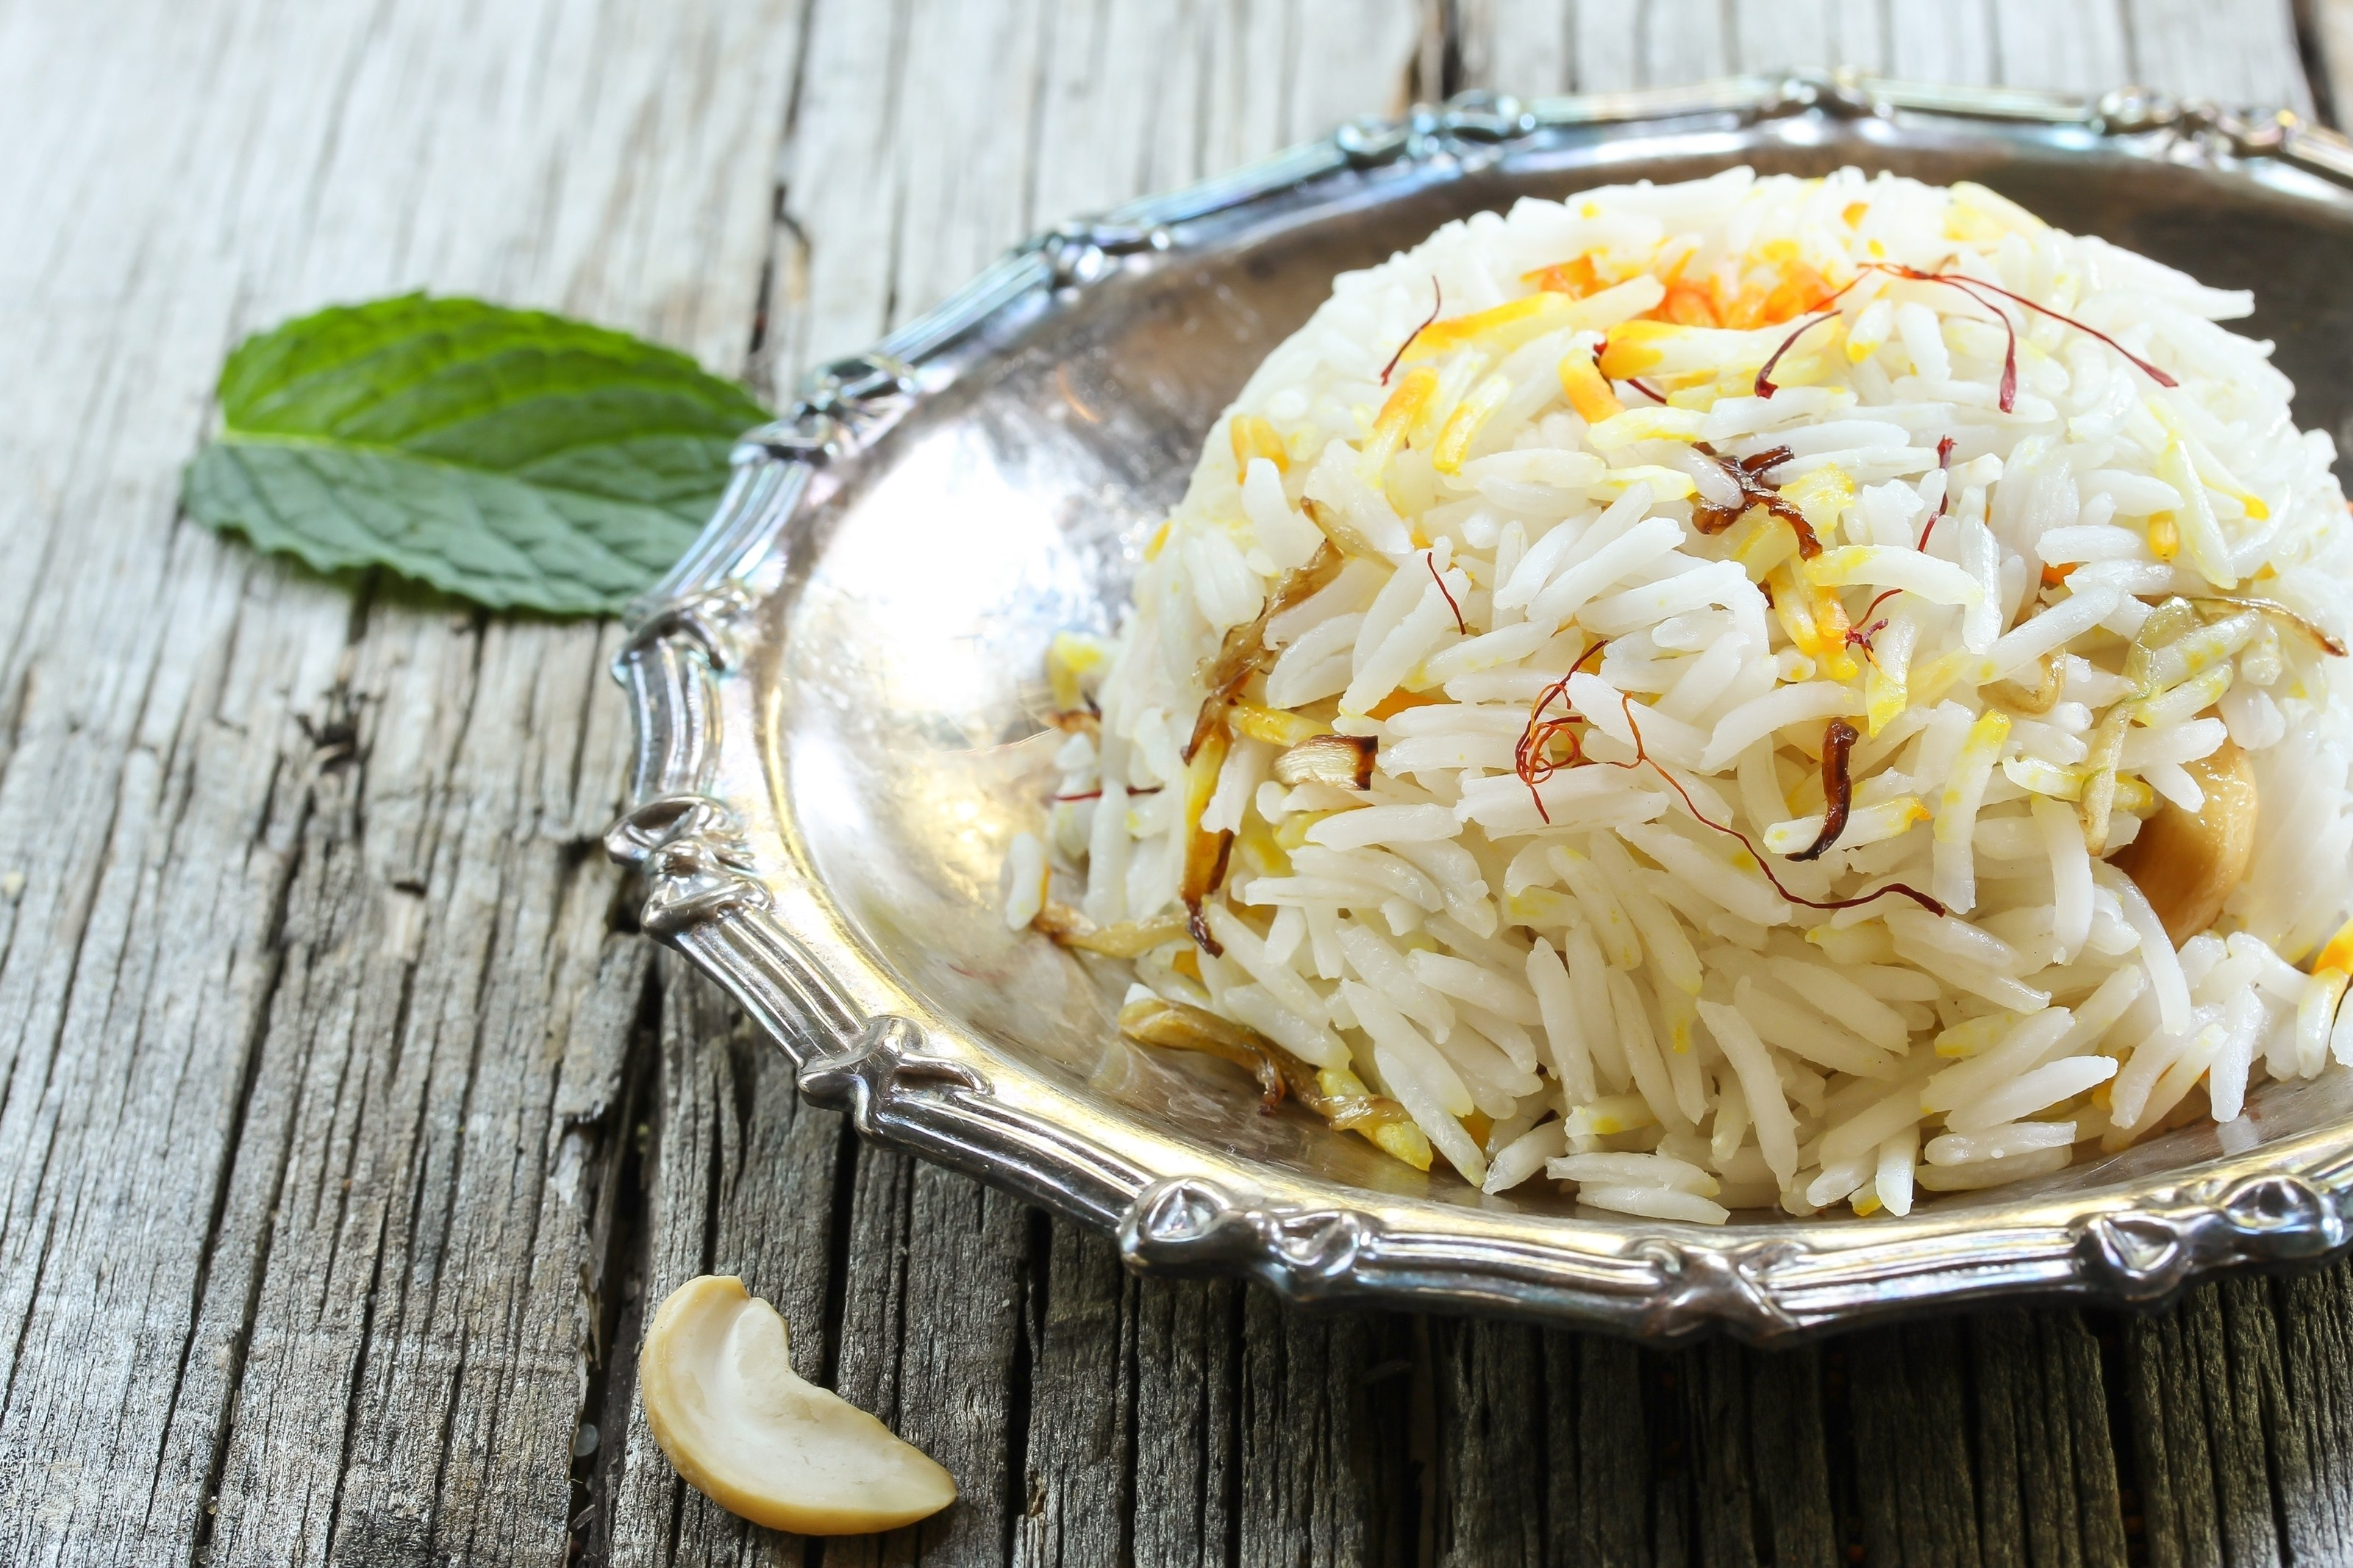 What Does Saffron Taste Like? How To Use It In Cooking